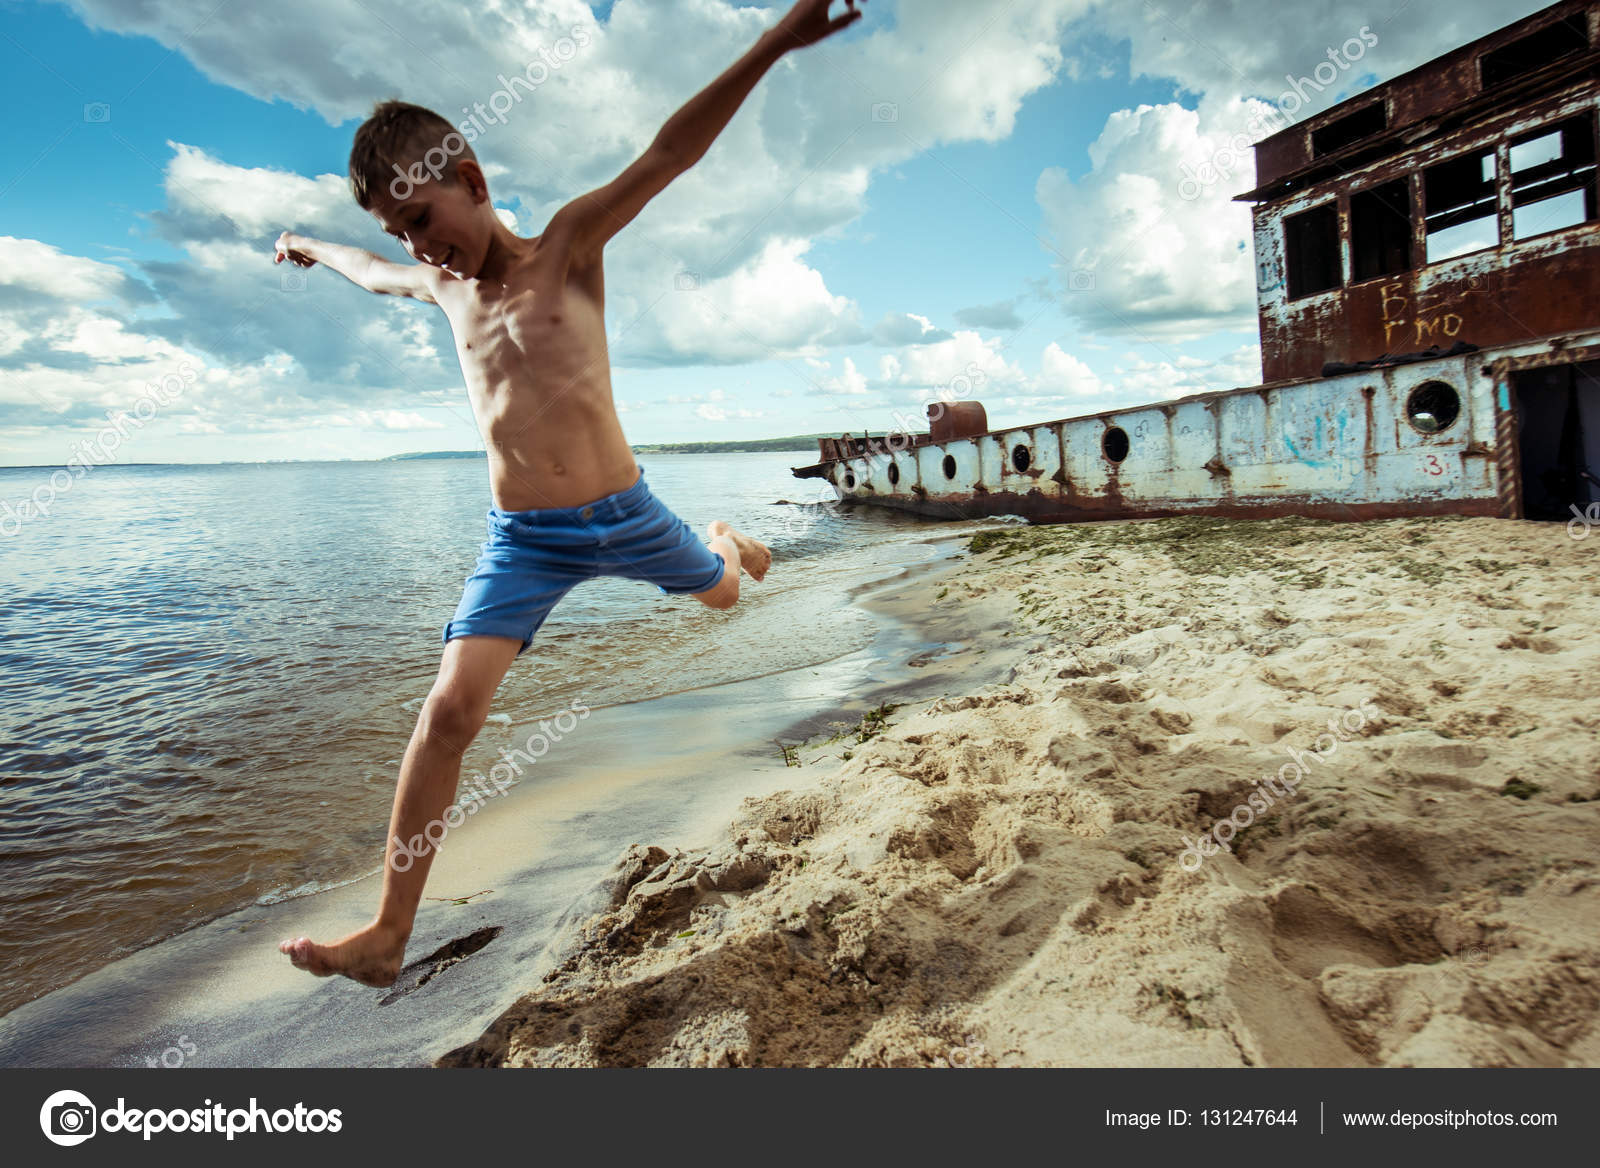 d2c82be1e Boy shorts is happy jumps and flips on the beach in summer– stock image